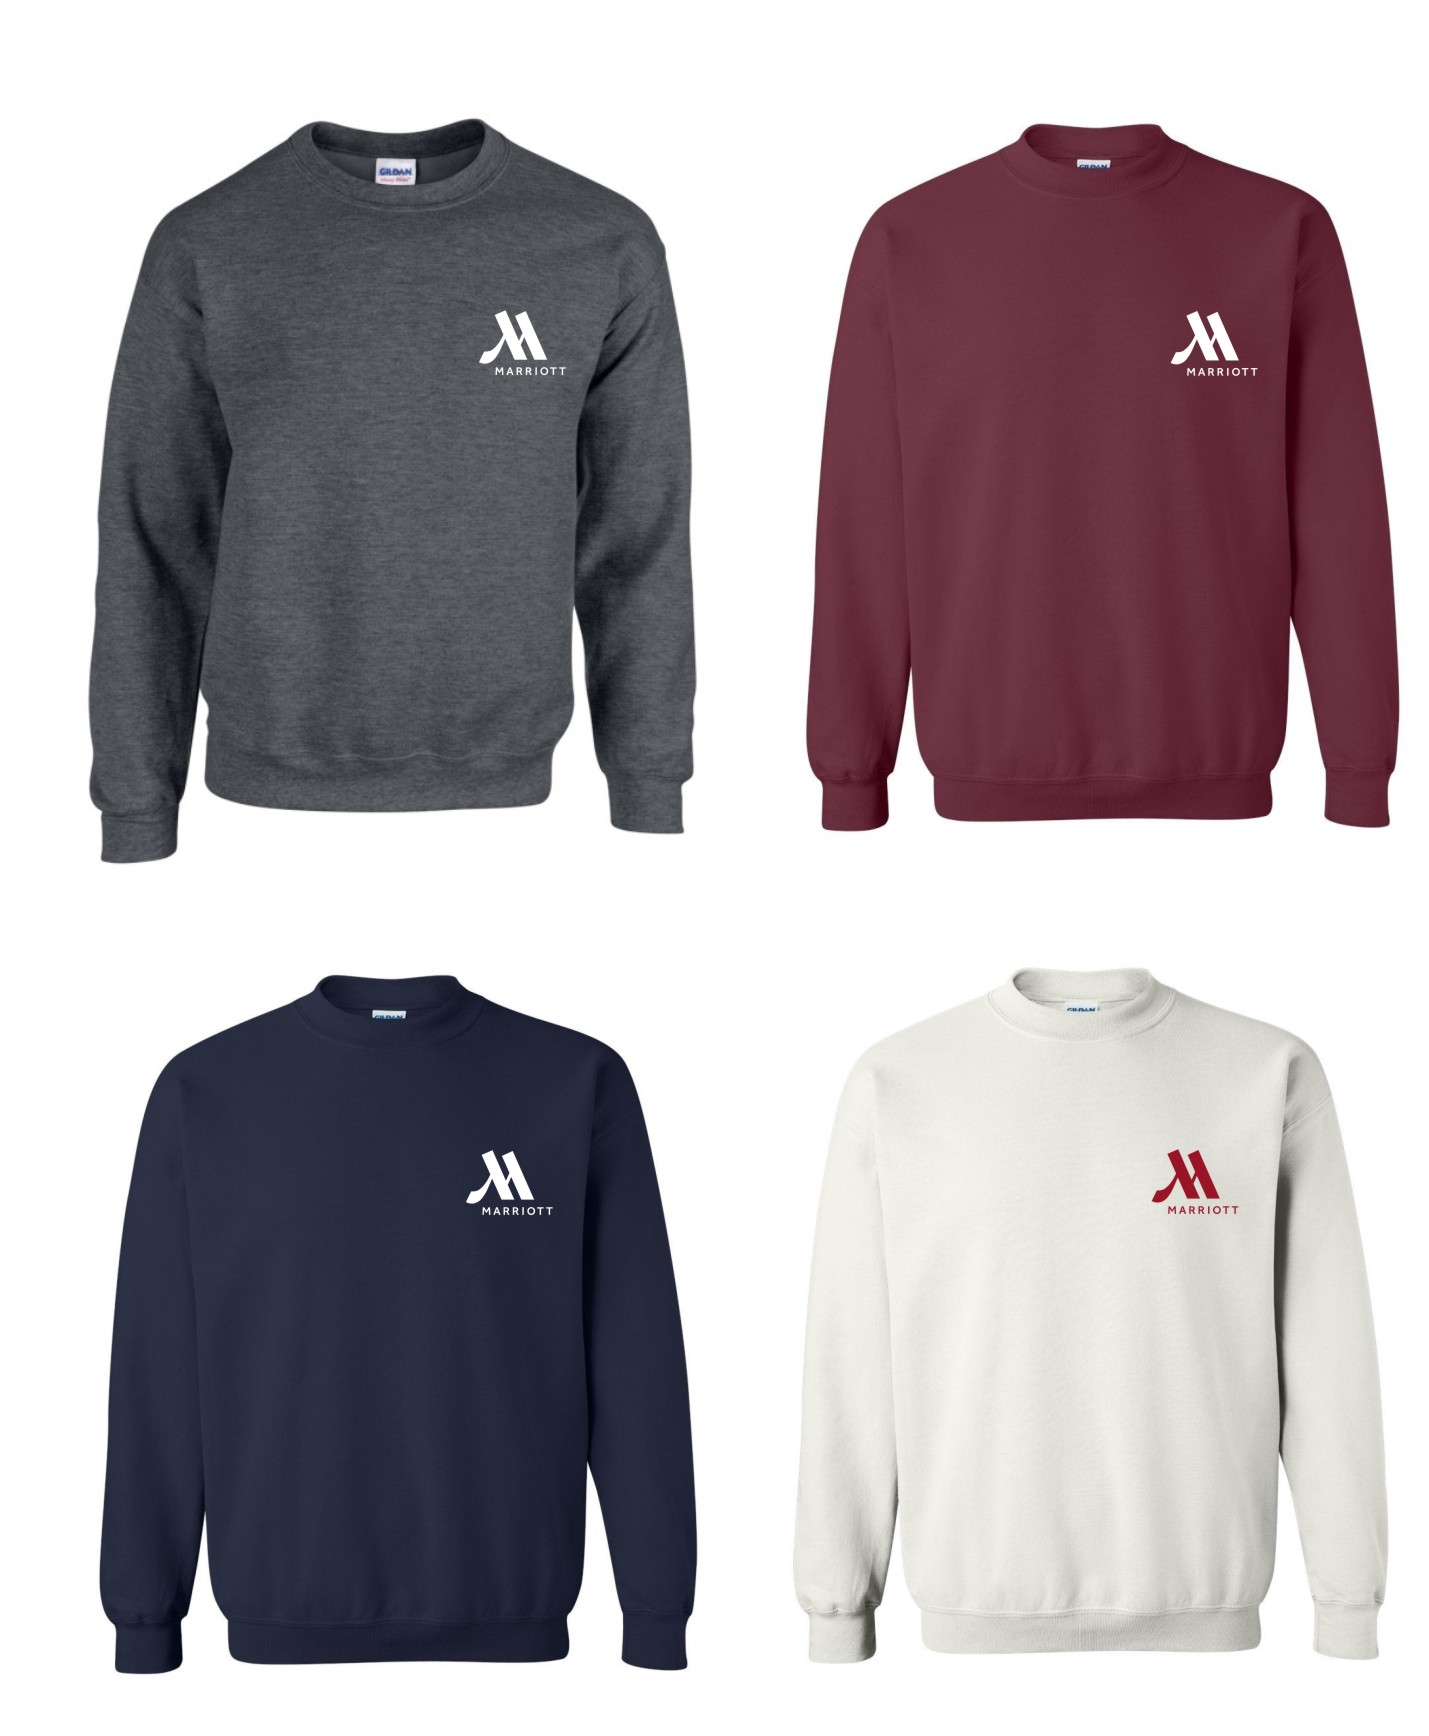 Sweatshirts, Crewneck.  50/50 Heavy Blend - Dark Heather, Maroon, Navy Blue and White.